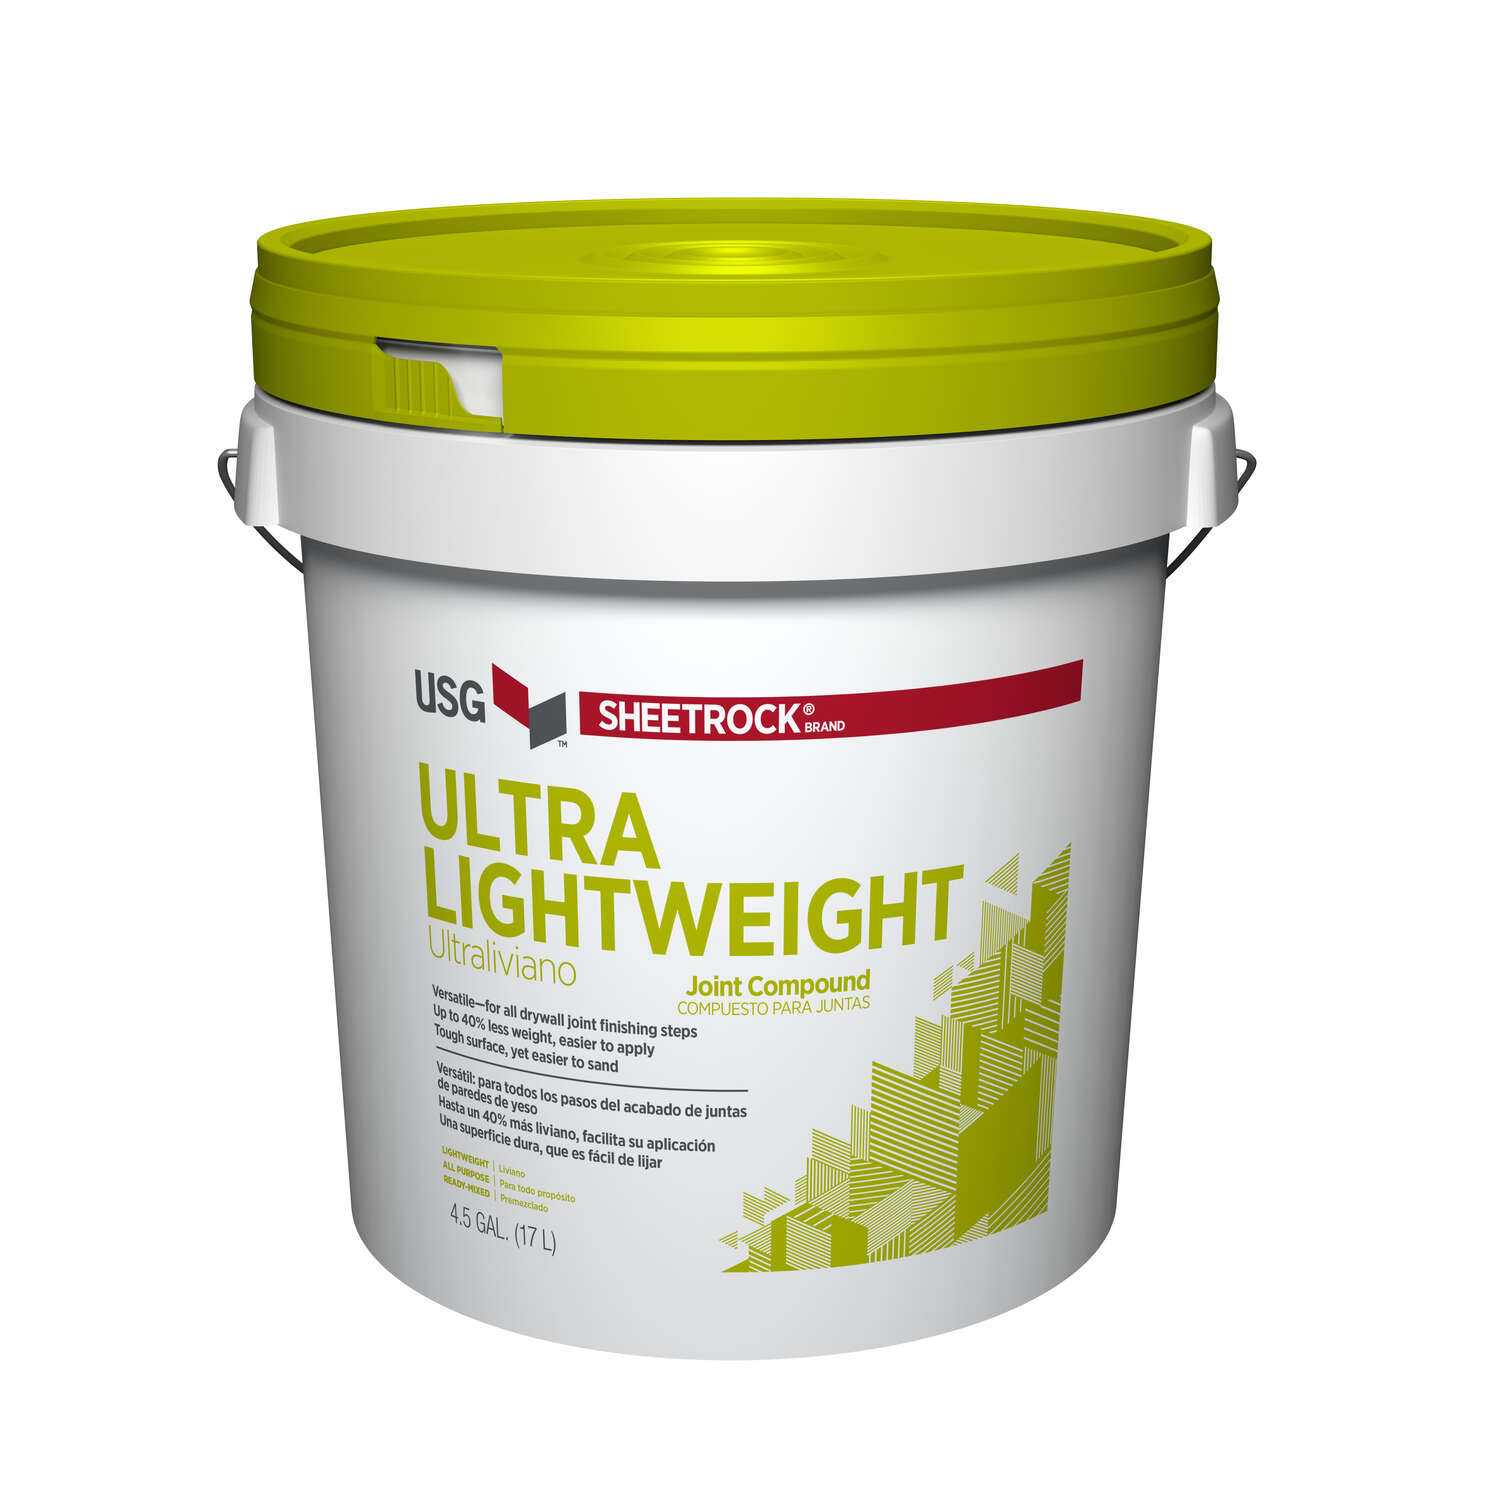 Sheetrock Off-White Ultra Lightweight Joint Compound 4.5 gal.